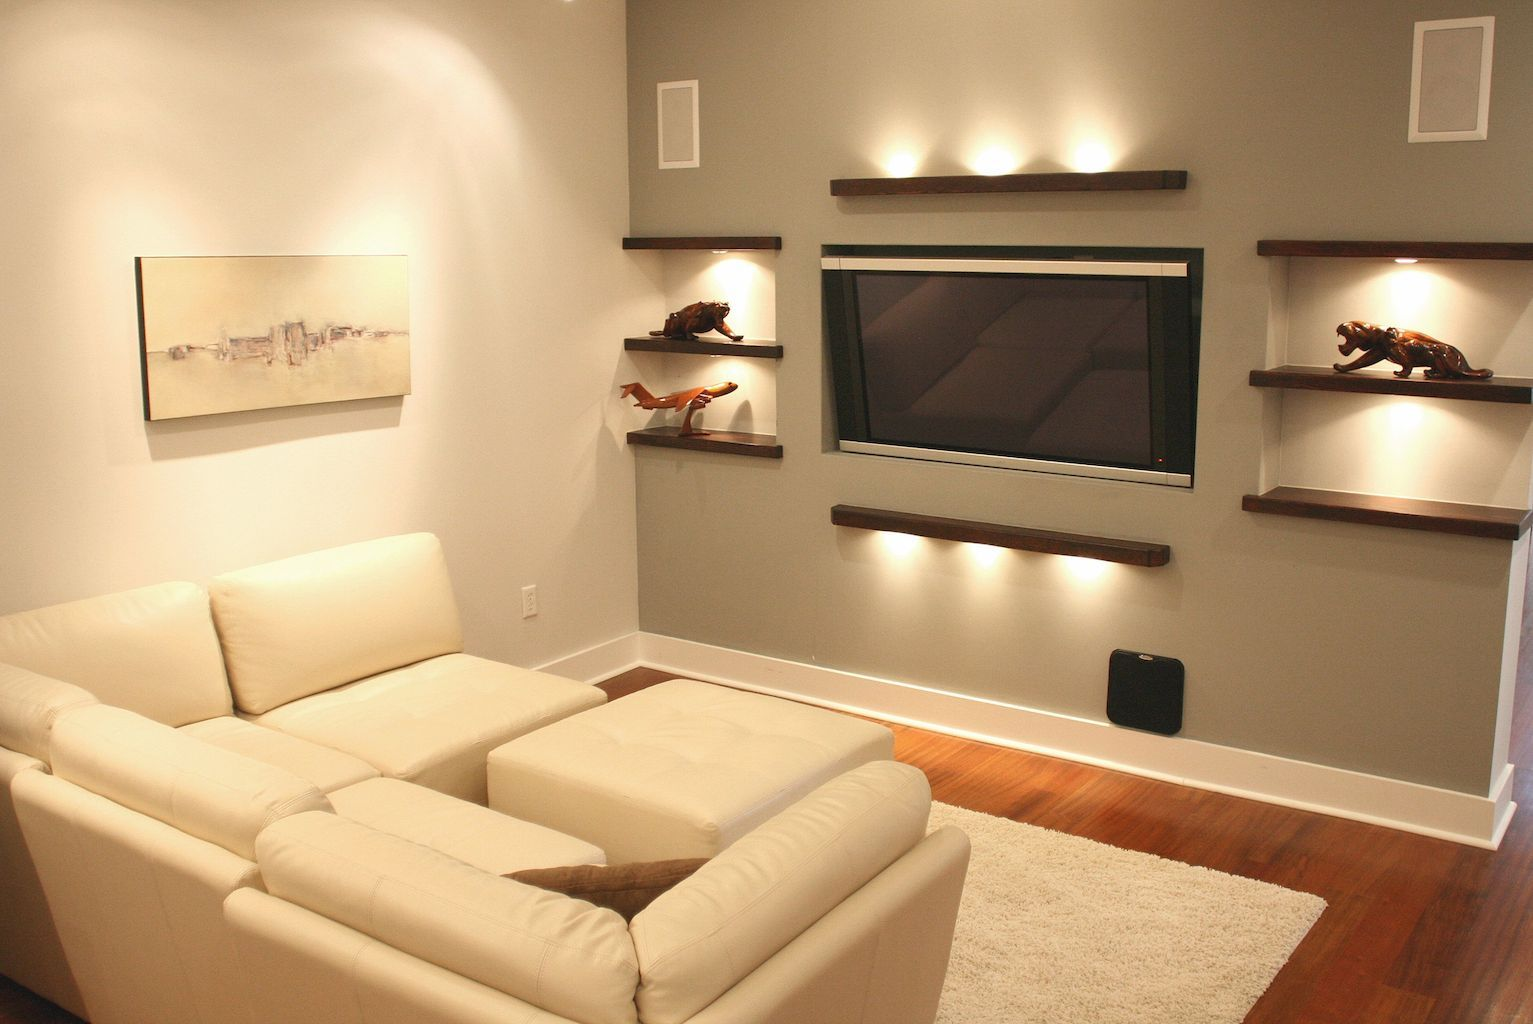 60 Tv Wall Living Room Ideas Decor On A Budget Condo Living Room Living Room Decor Apartment Small Living Rooms